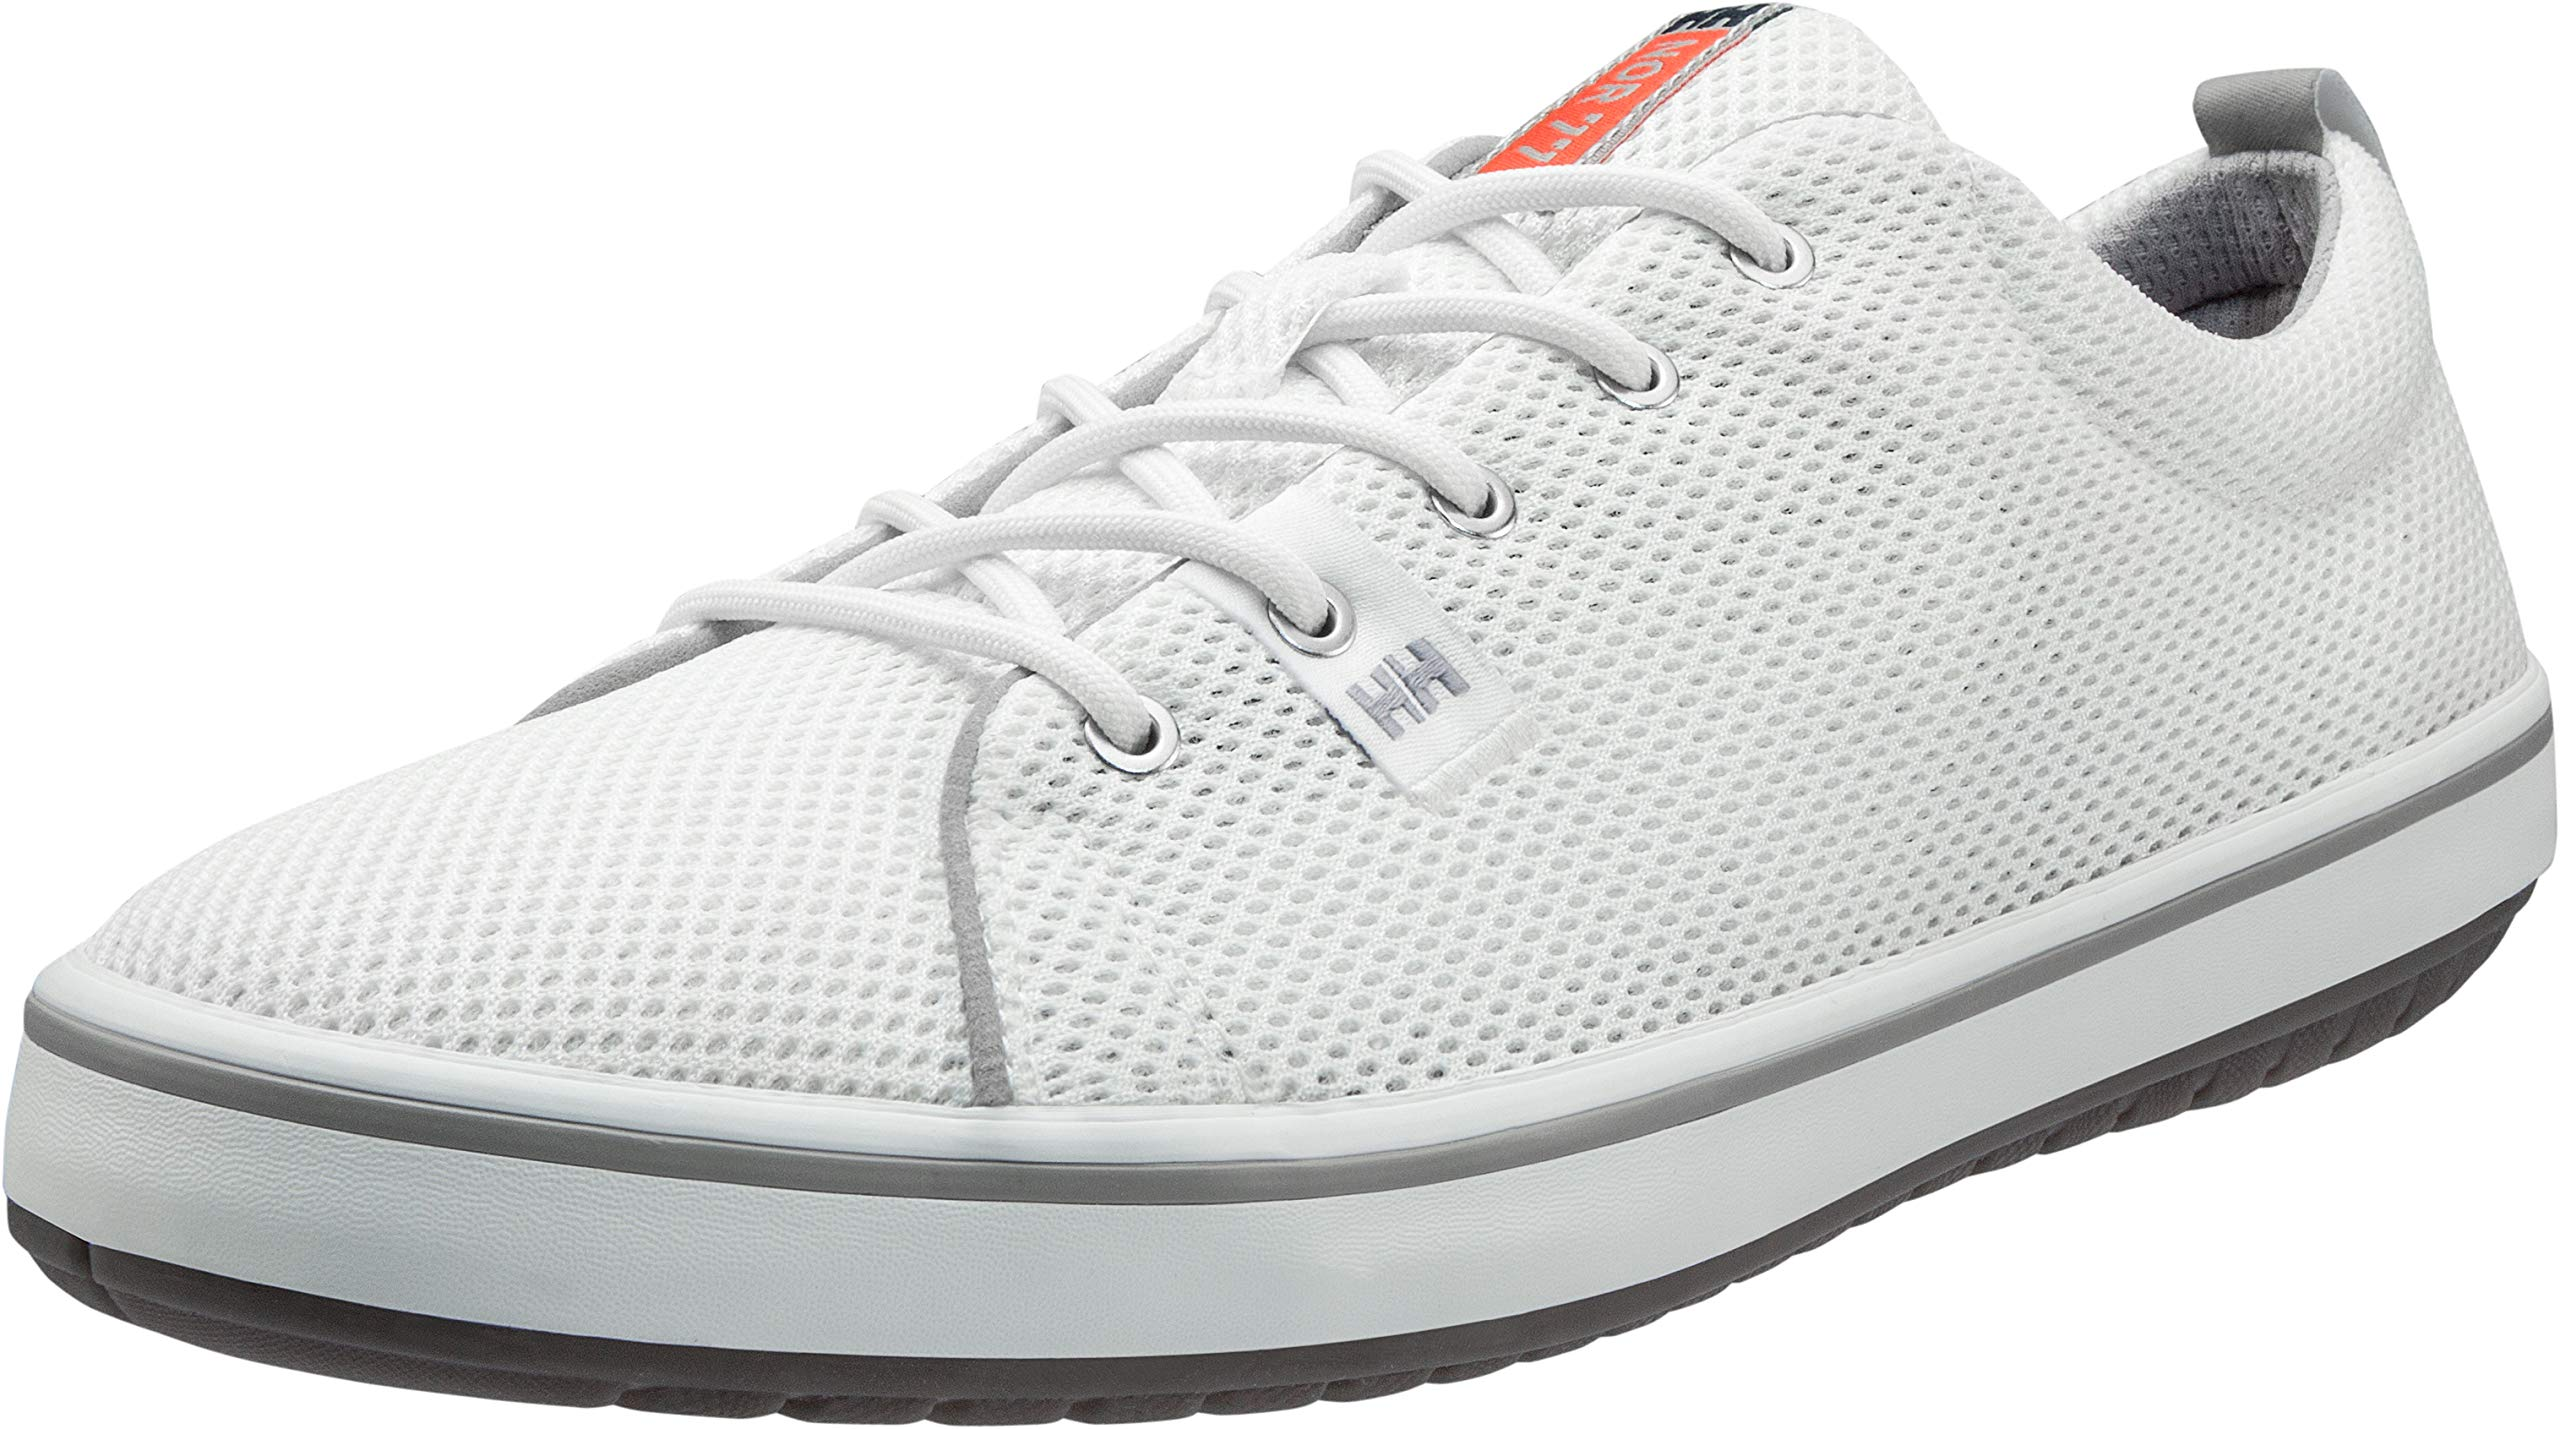 Helly Hansen Men's Scurry 2 Mesh Low-Cut Sneaker, Off White/Light Grey/Grenadine/Smoked Pearl Gum, 7.5